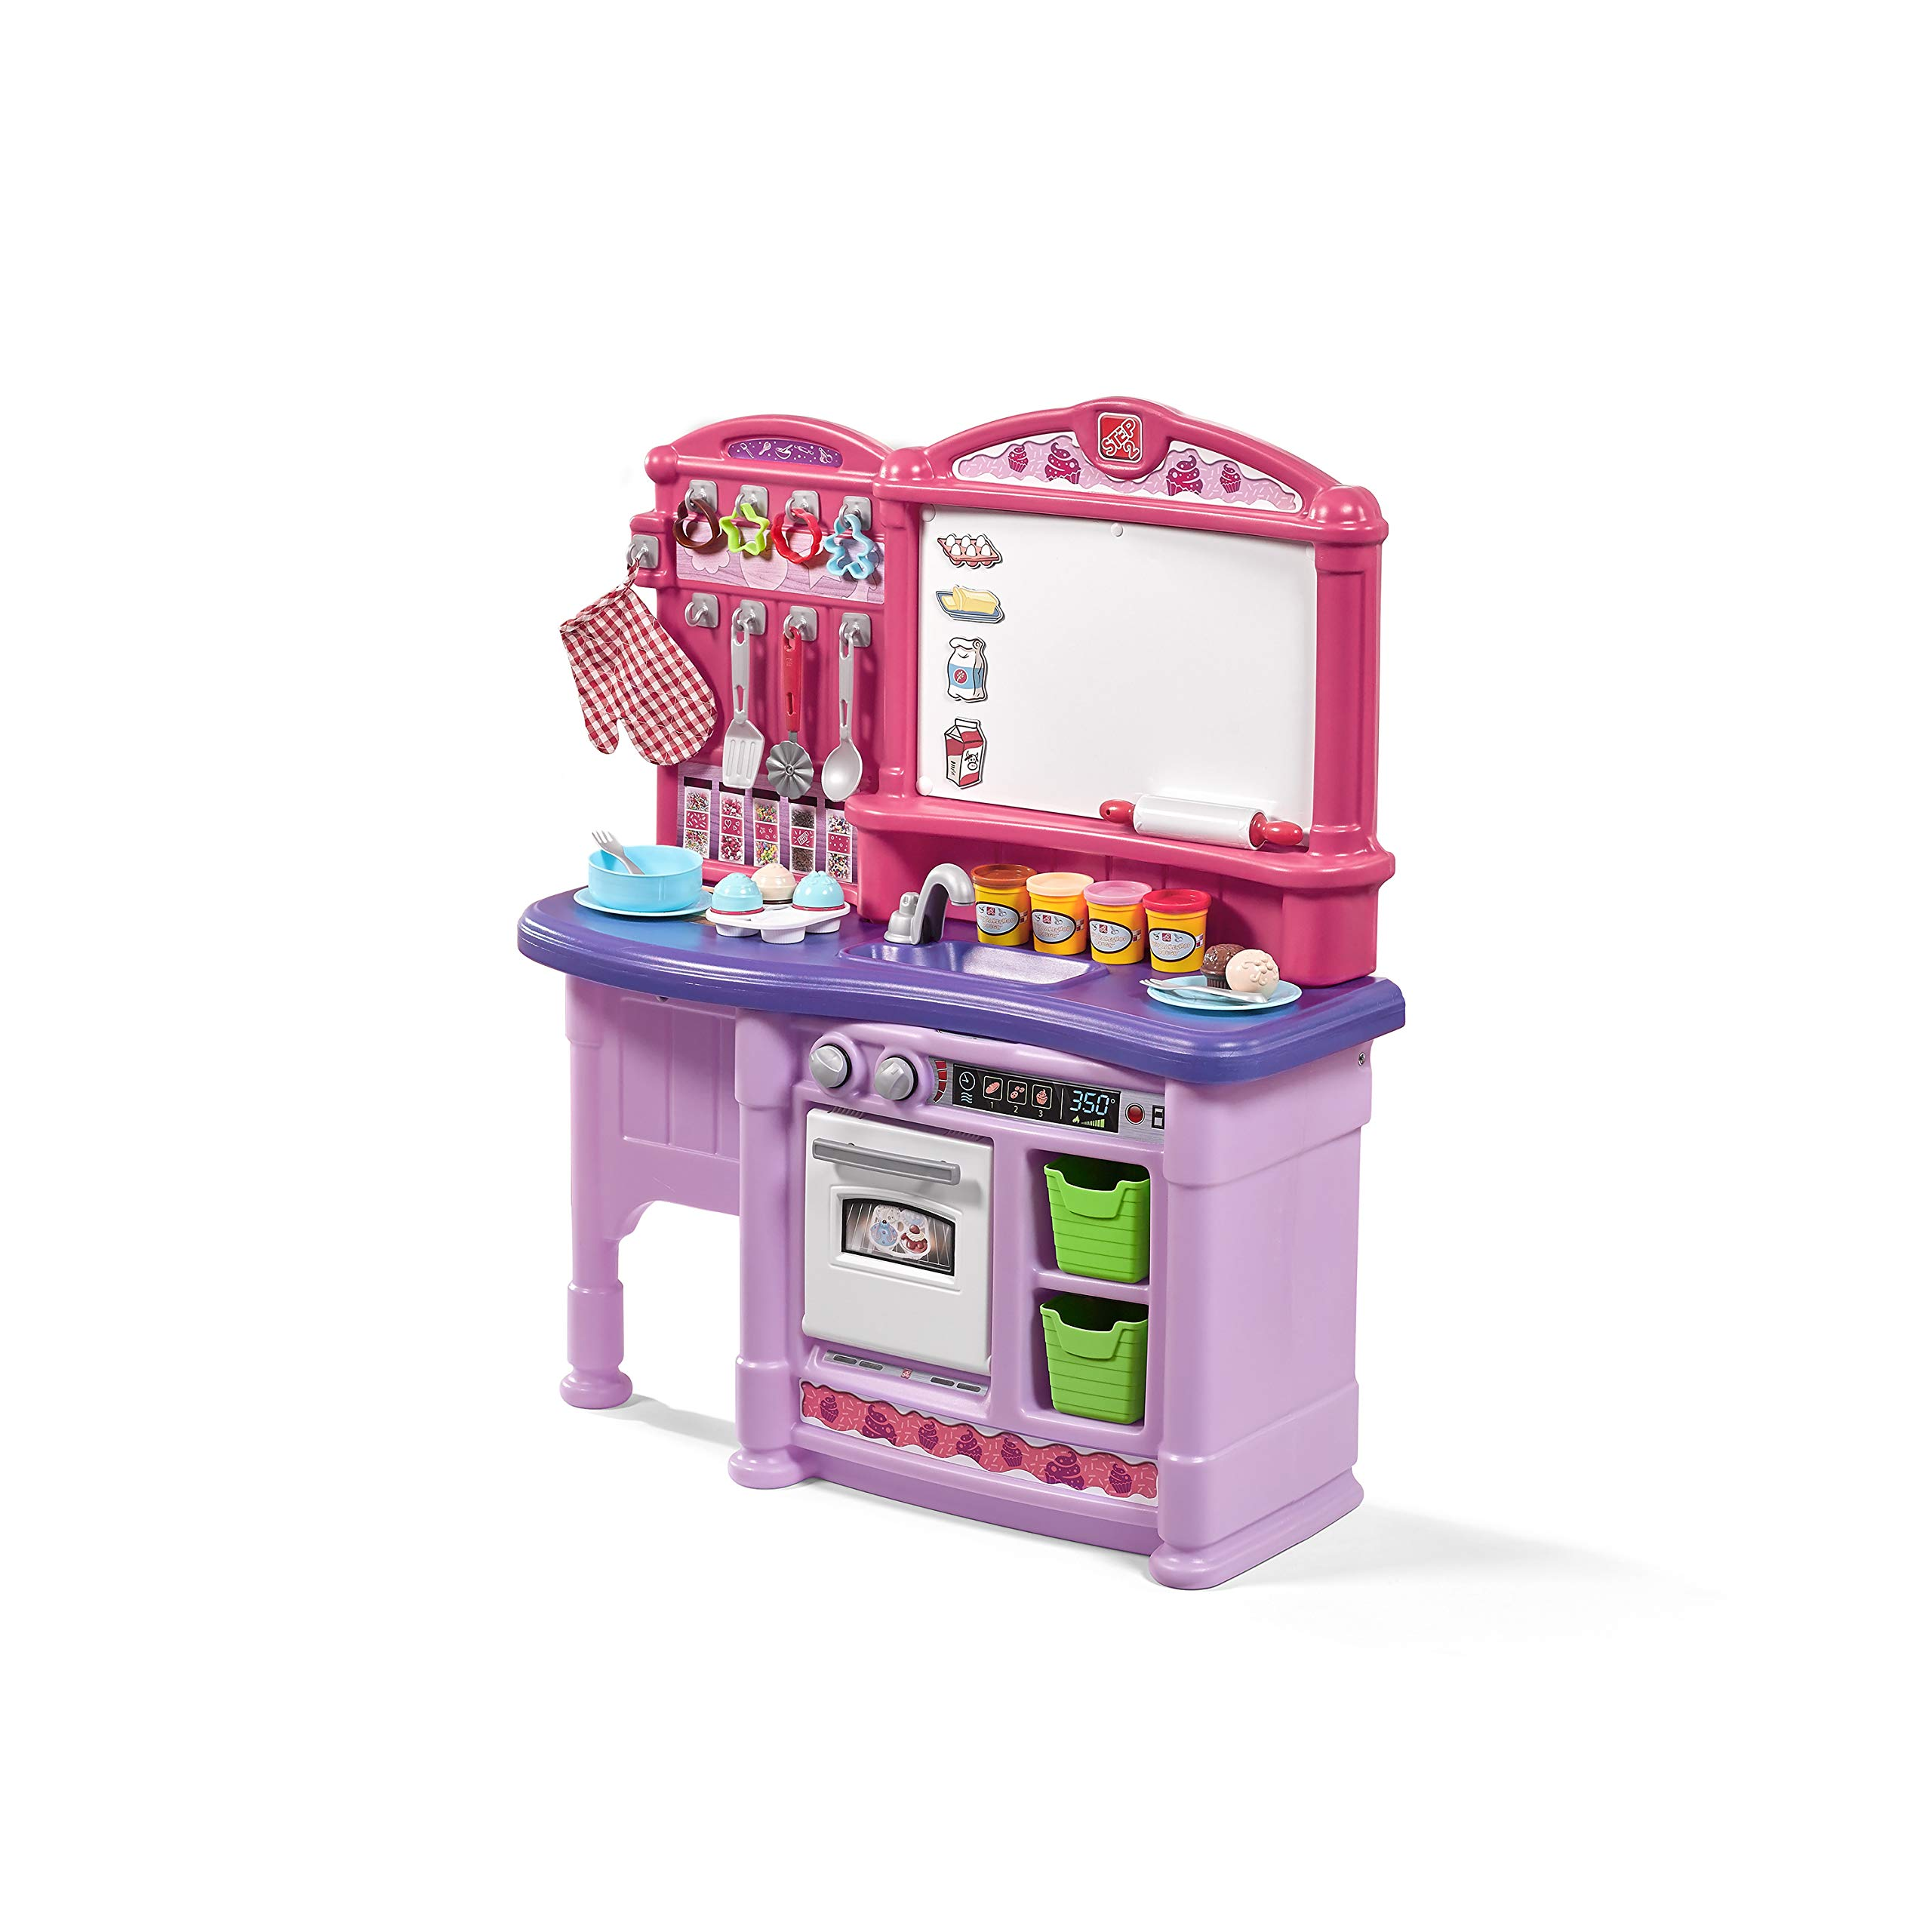 Step2 Create & Bake Play Kitchen with Toy Baking Set, Pink & Purple, 40'' H x 34.25'' W x 12'' D